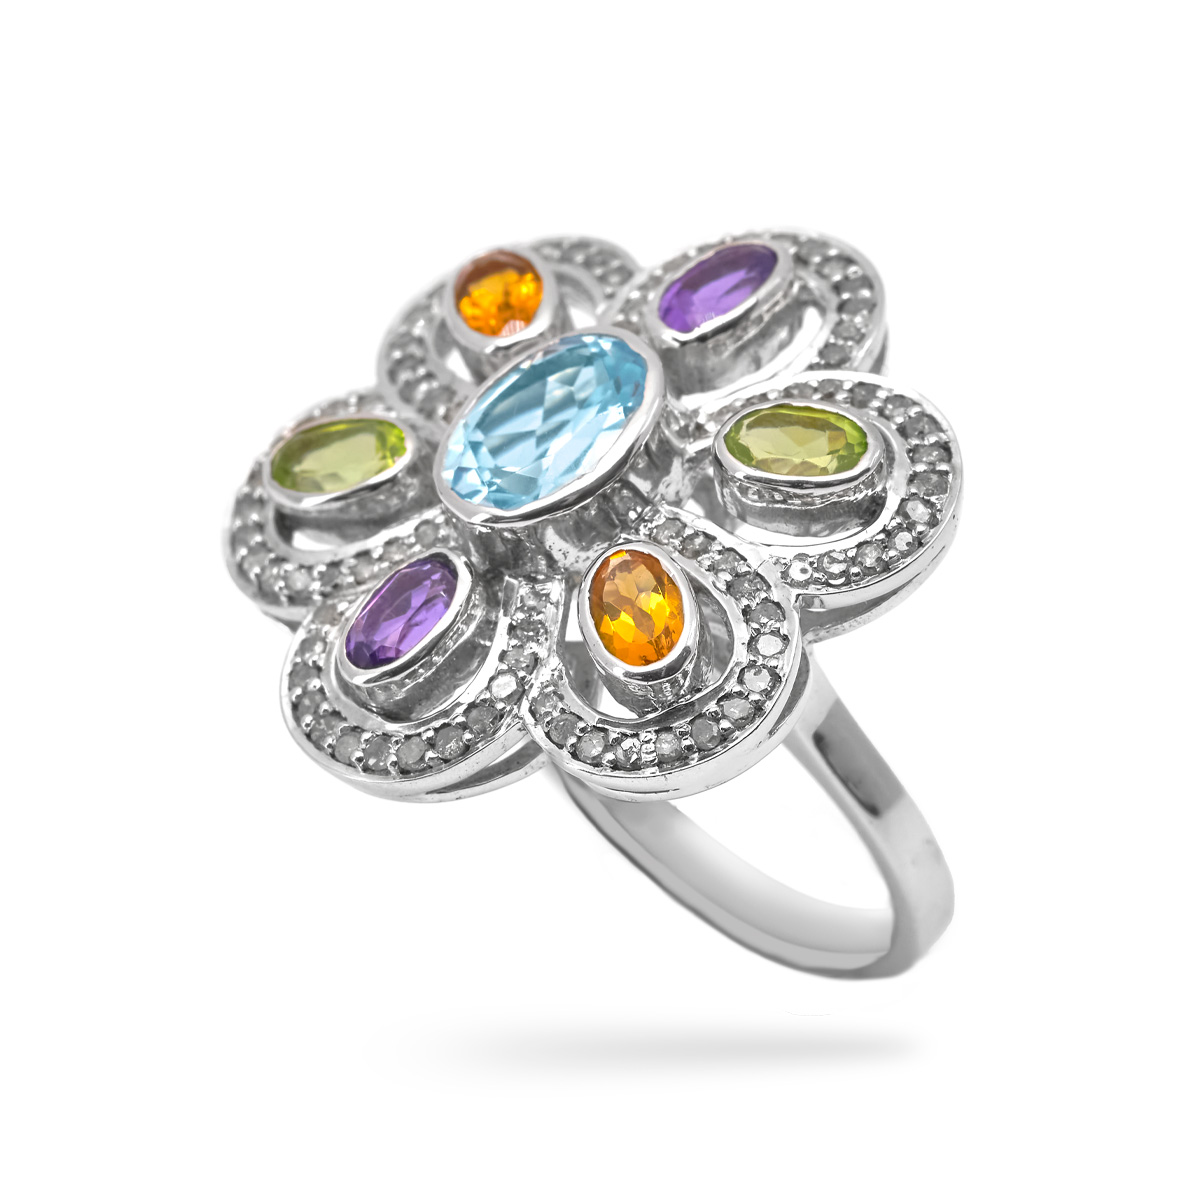 Bague argent univers, topaze, peridot, citrine Sunflower